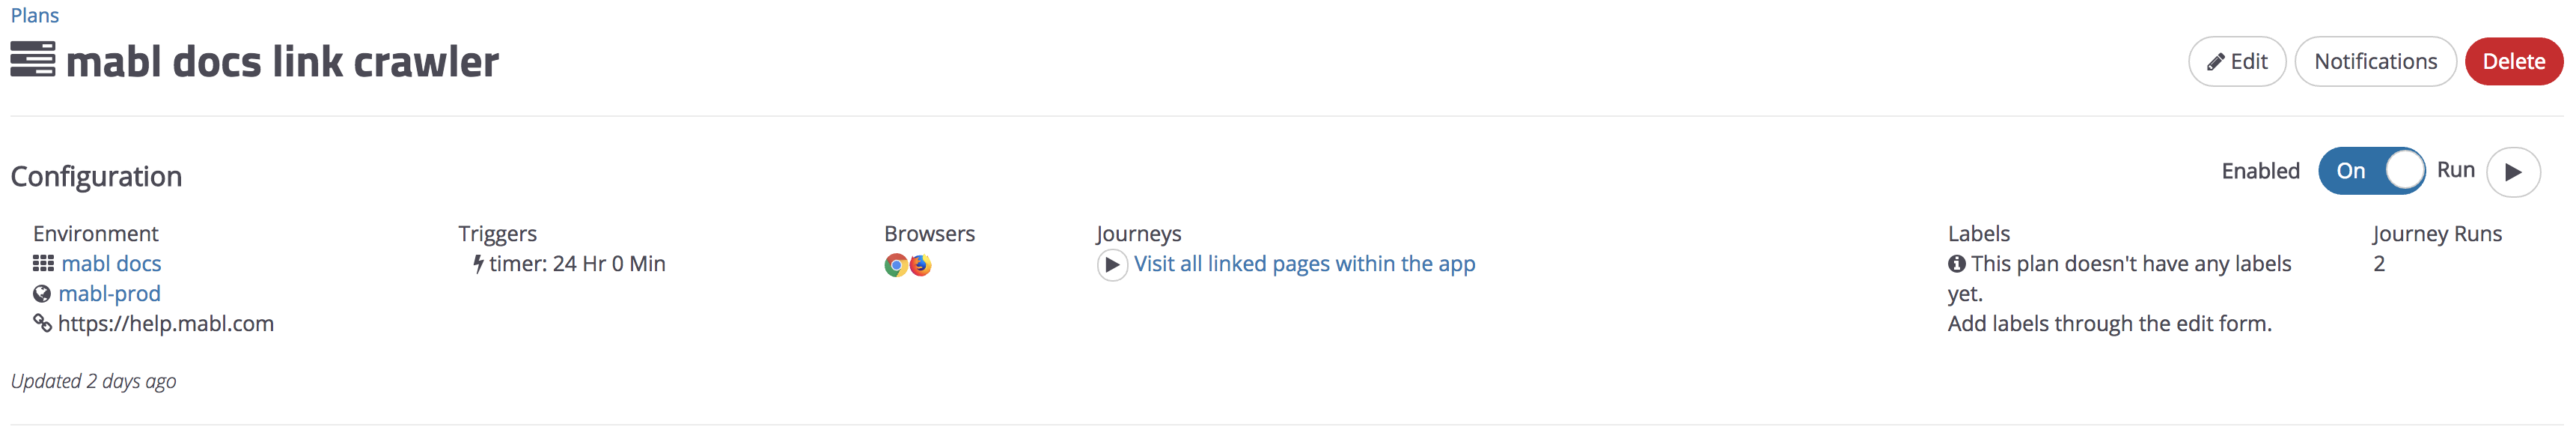 A plan with multiple browsers and one journey.